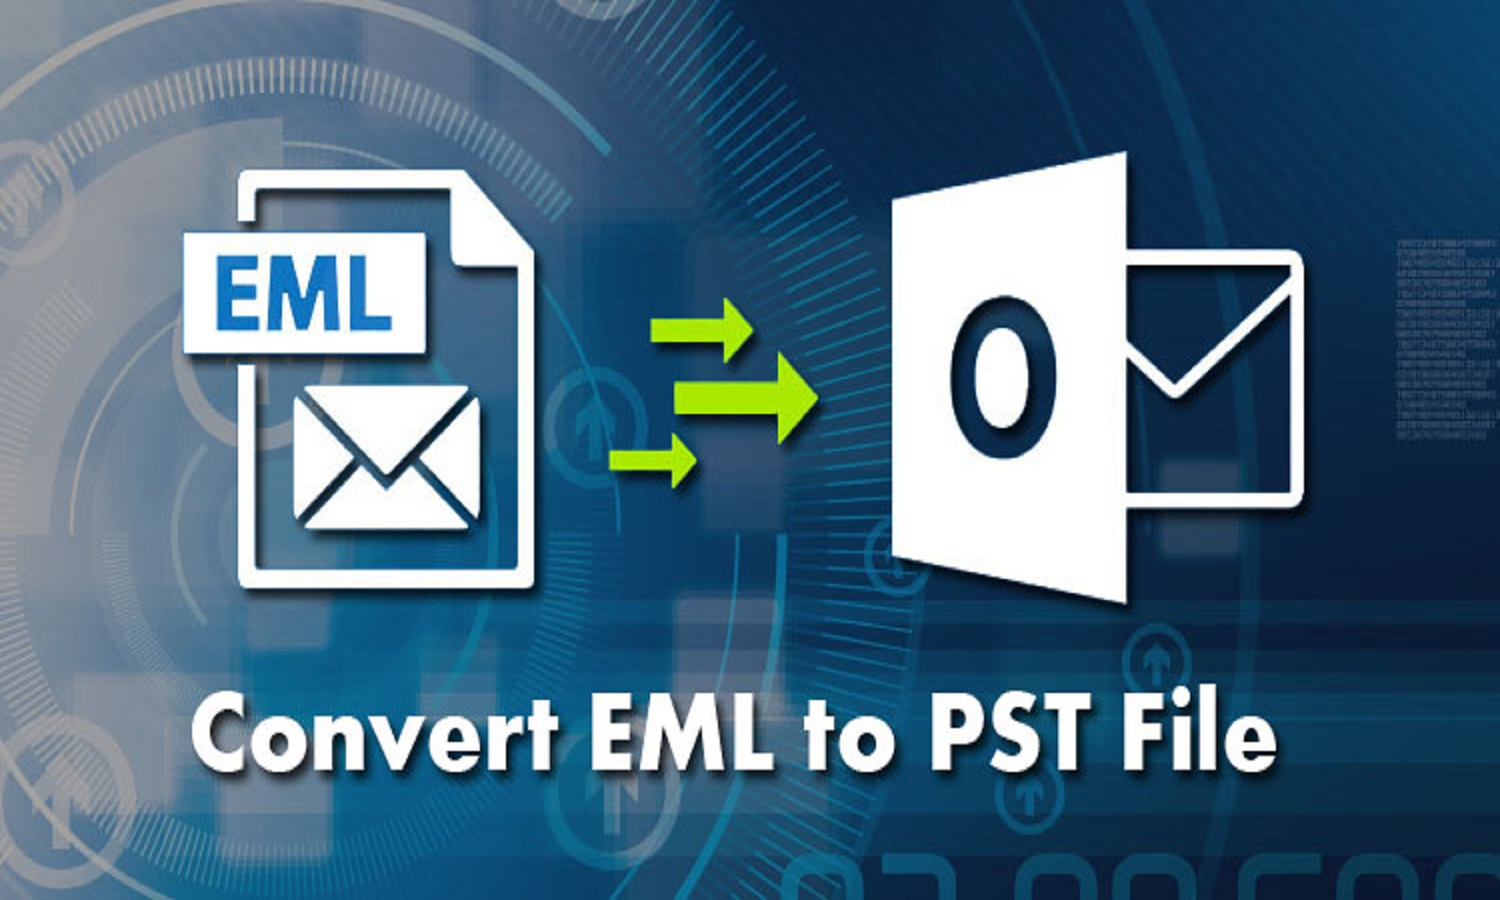 What is the Best Way to Convert EML Files to MS Outlook PST?